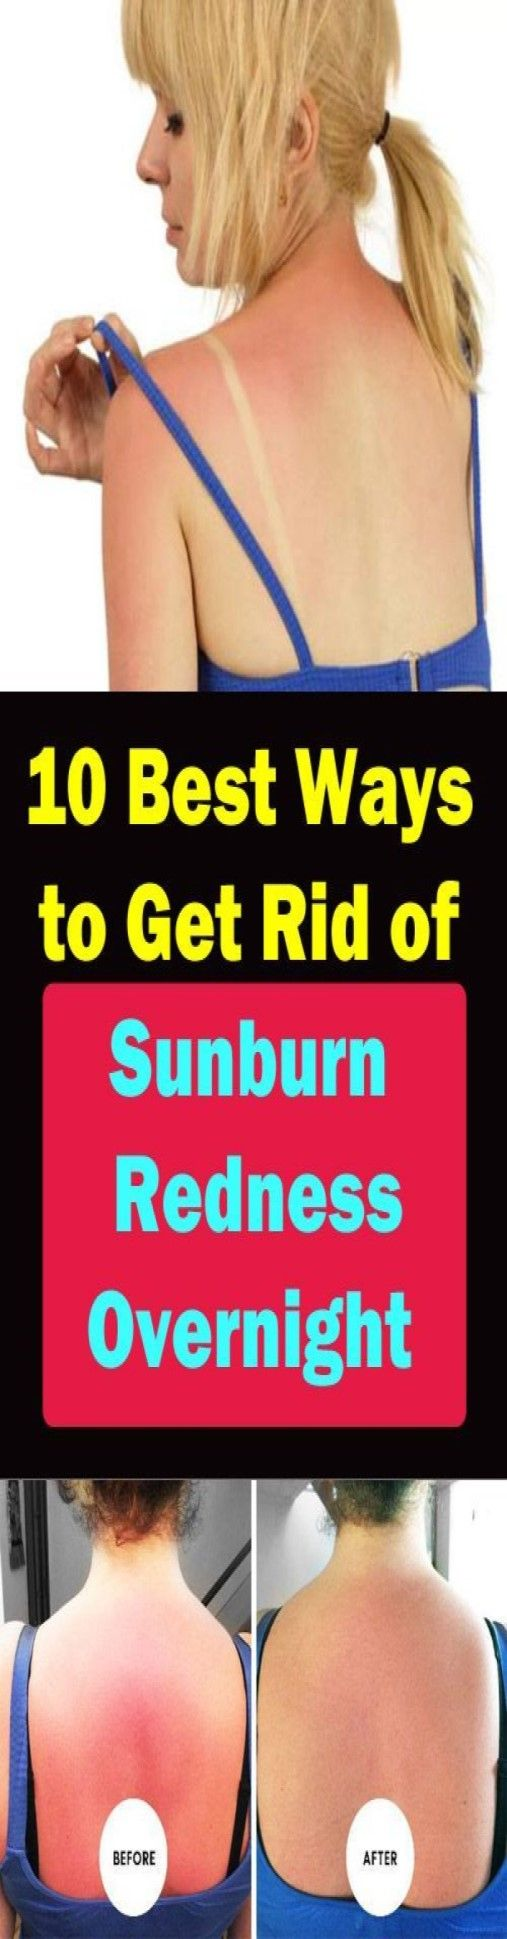 How To Get Rid Of A Face Sunburn Overnight